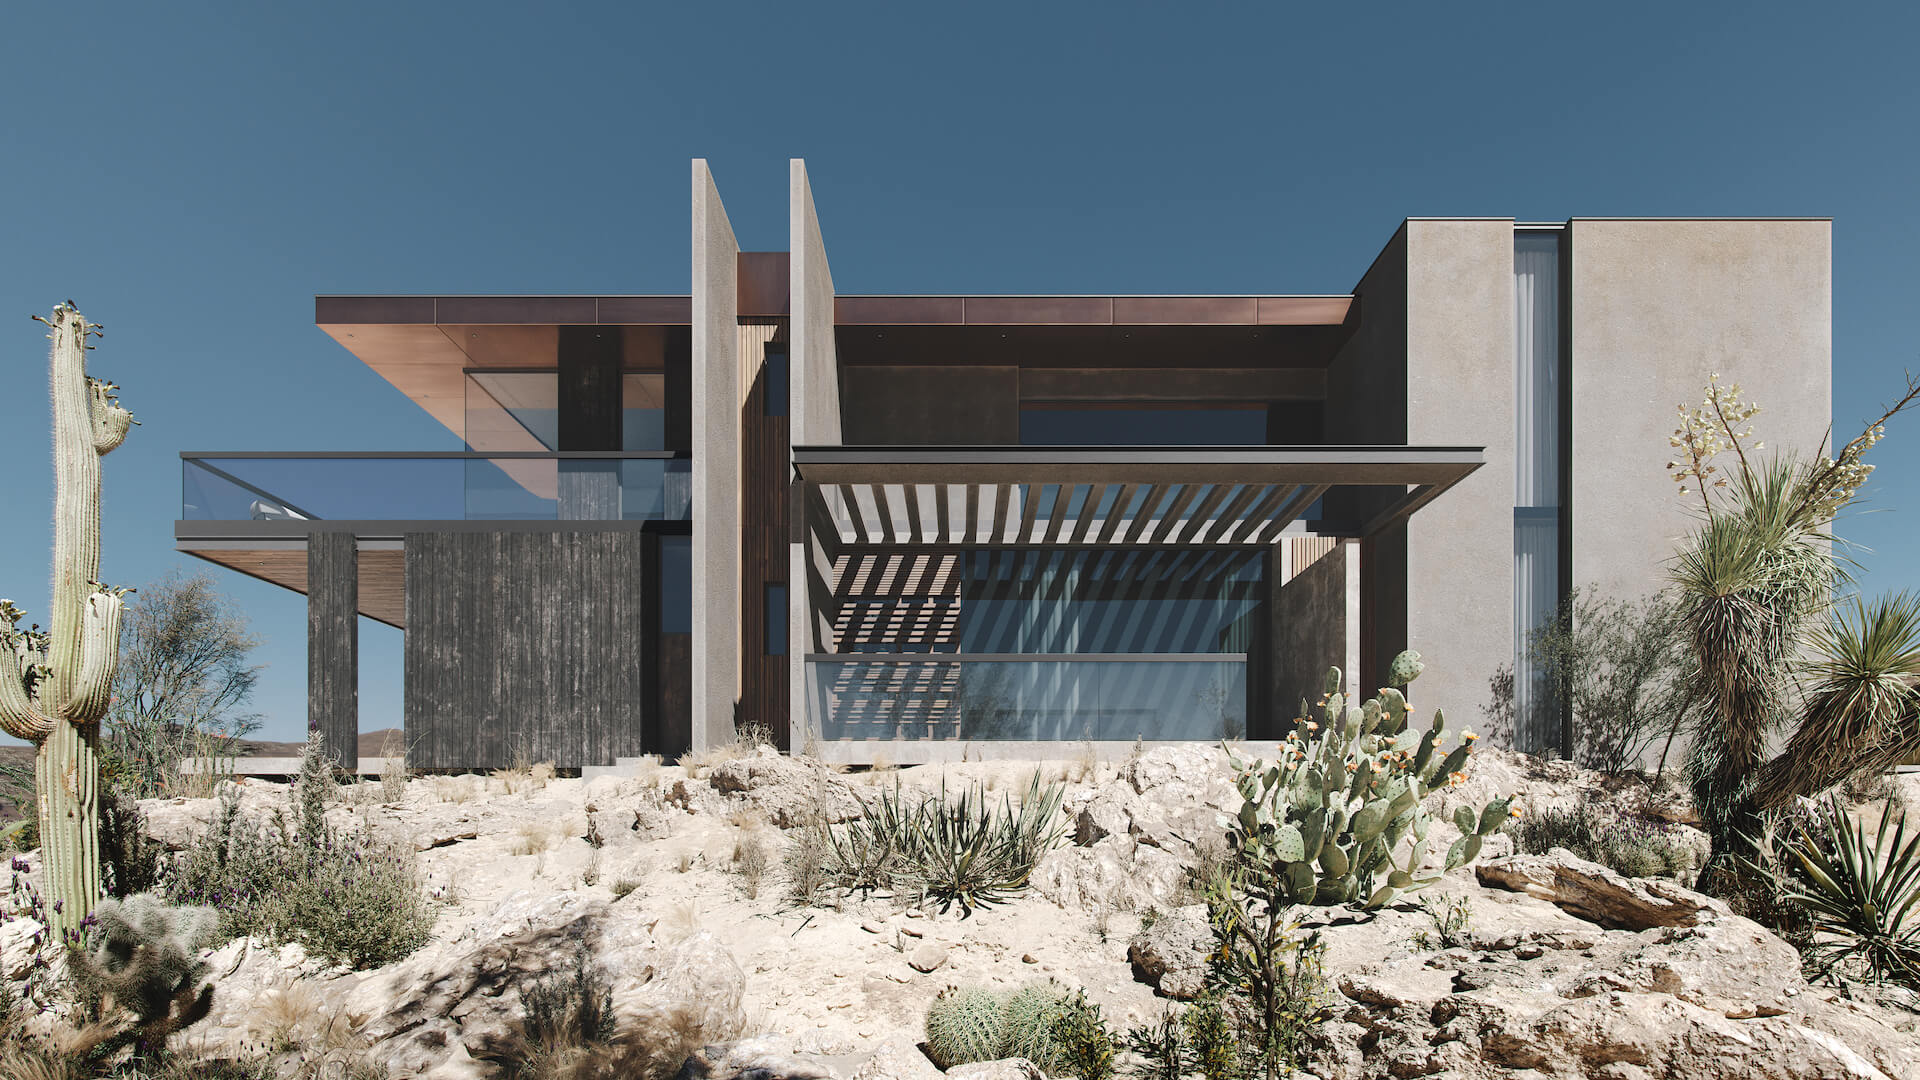 Architectural 3D Rendering of a Residence in the Desert